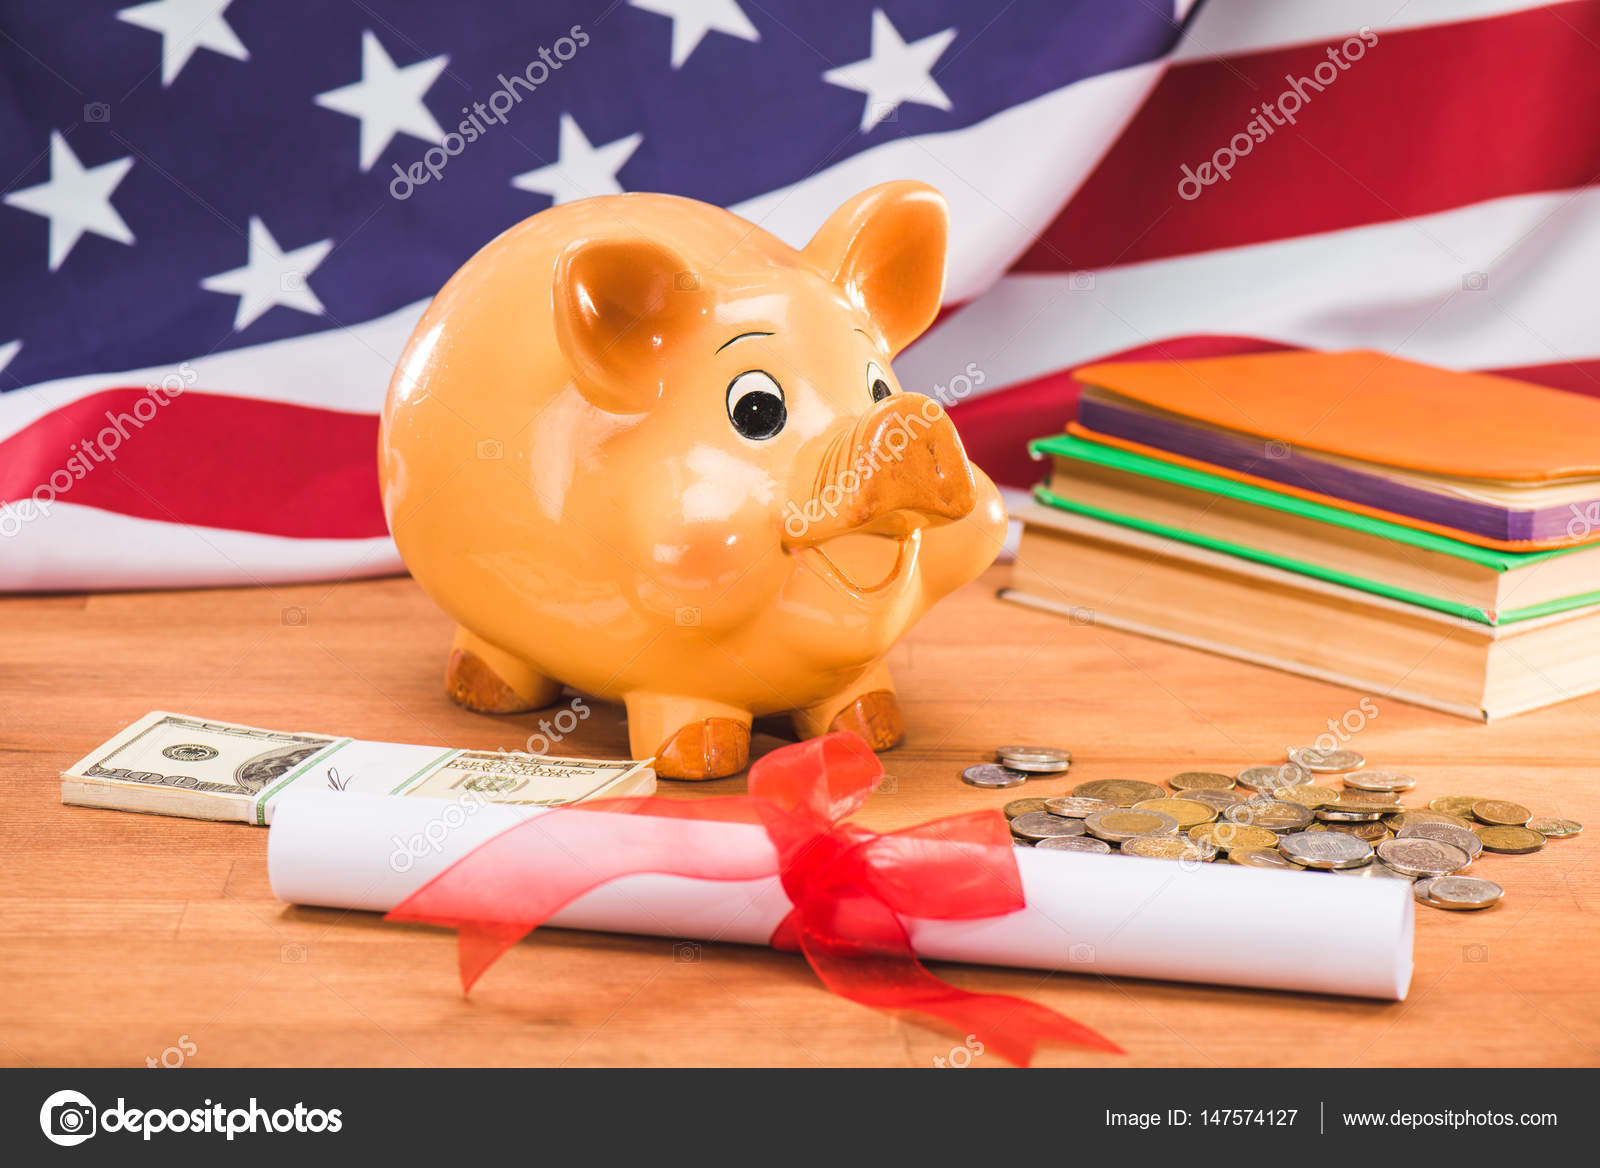 diploma and piggy bank stock photo © sergpoznanskiy  diploma and piggy bank coins and dollars usa flag behind education concept photo by sergpoznanskiy